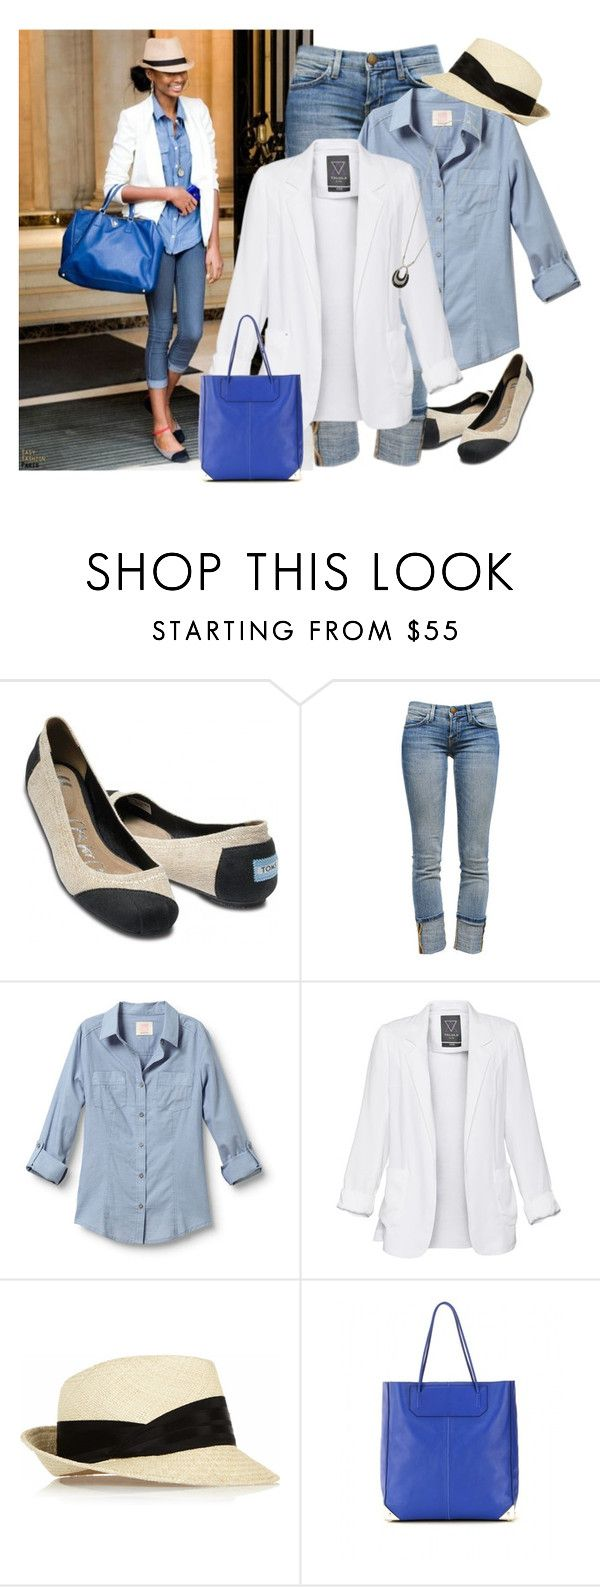 """Untitled #404"" by bonnaroosky ❤ liked on Polyvore featuring TOMS, Current/Elliott, Quiksilver, Talula, Eugenia Kim, Alexander Wang, Oasis, women's clothing, women's fashion and women"